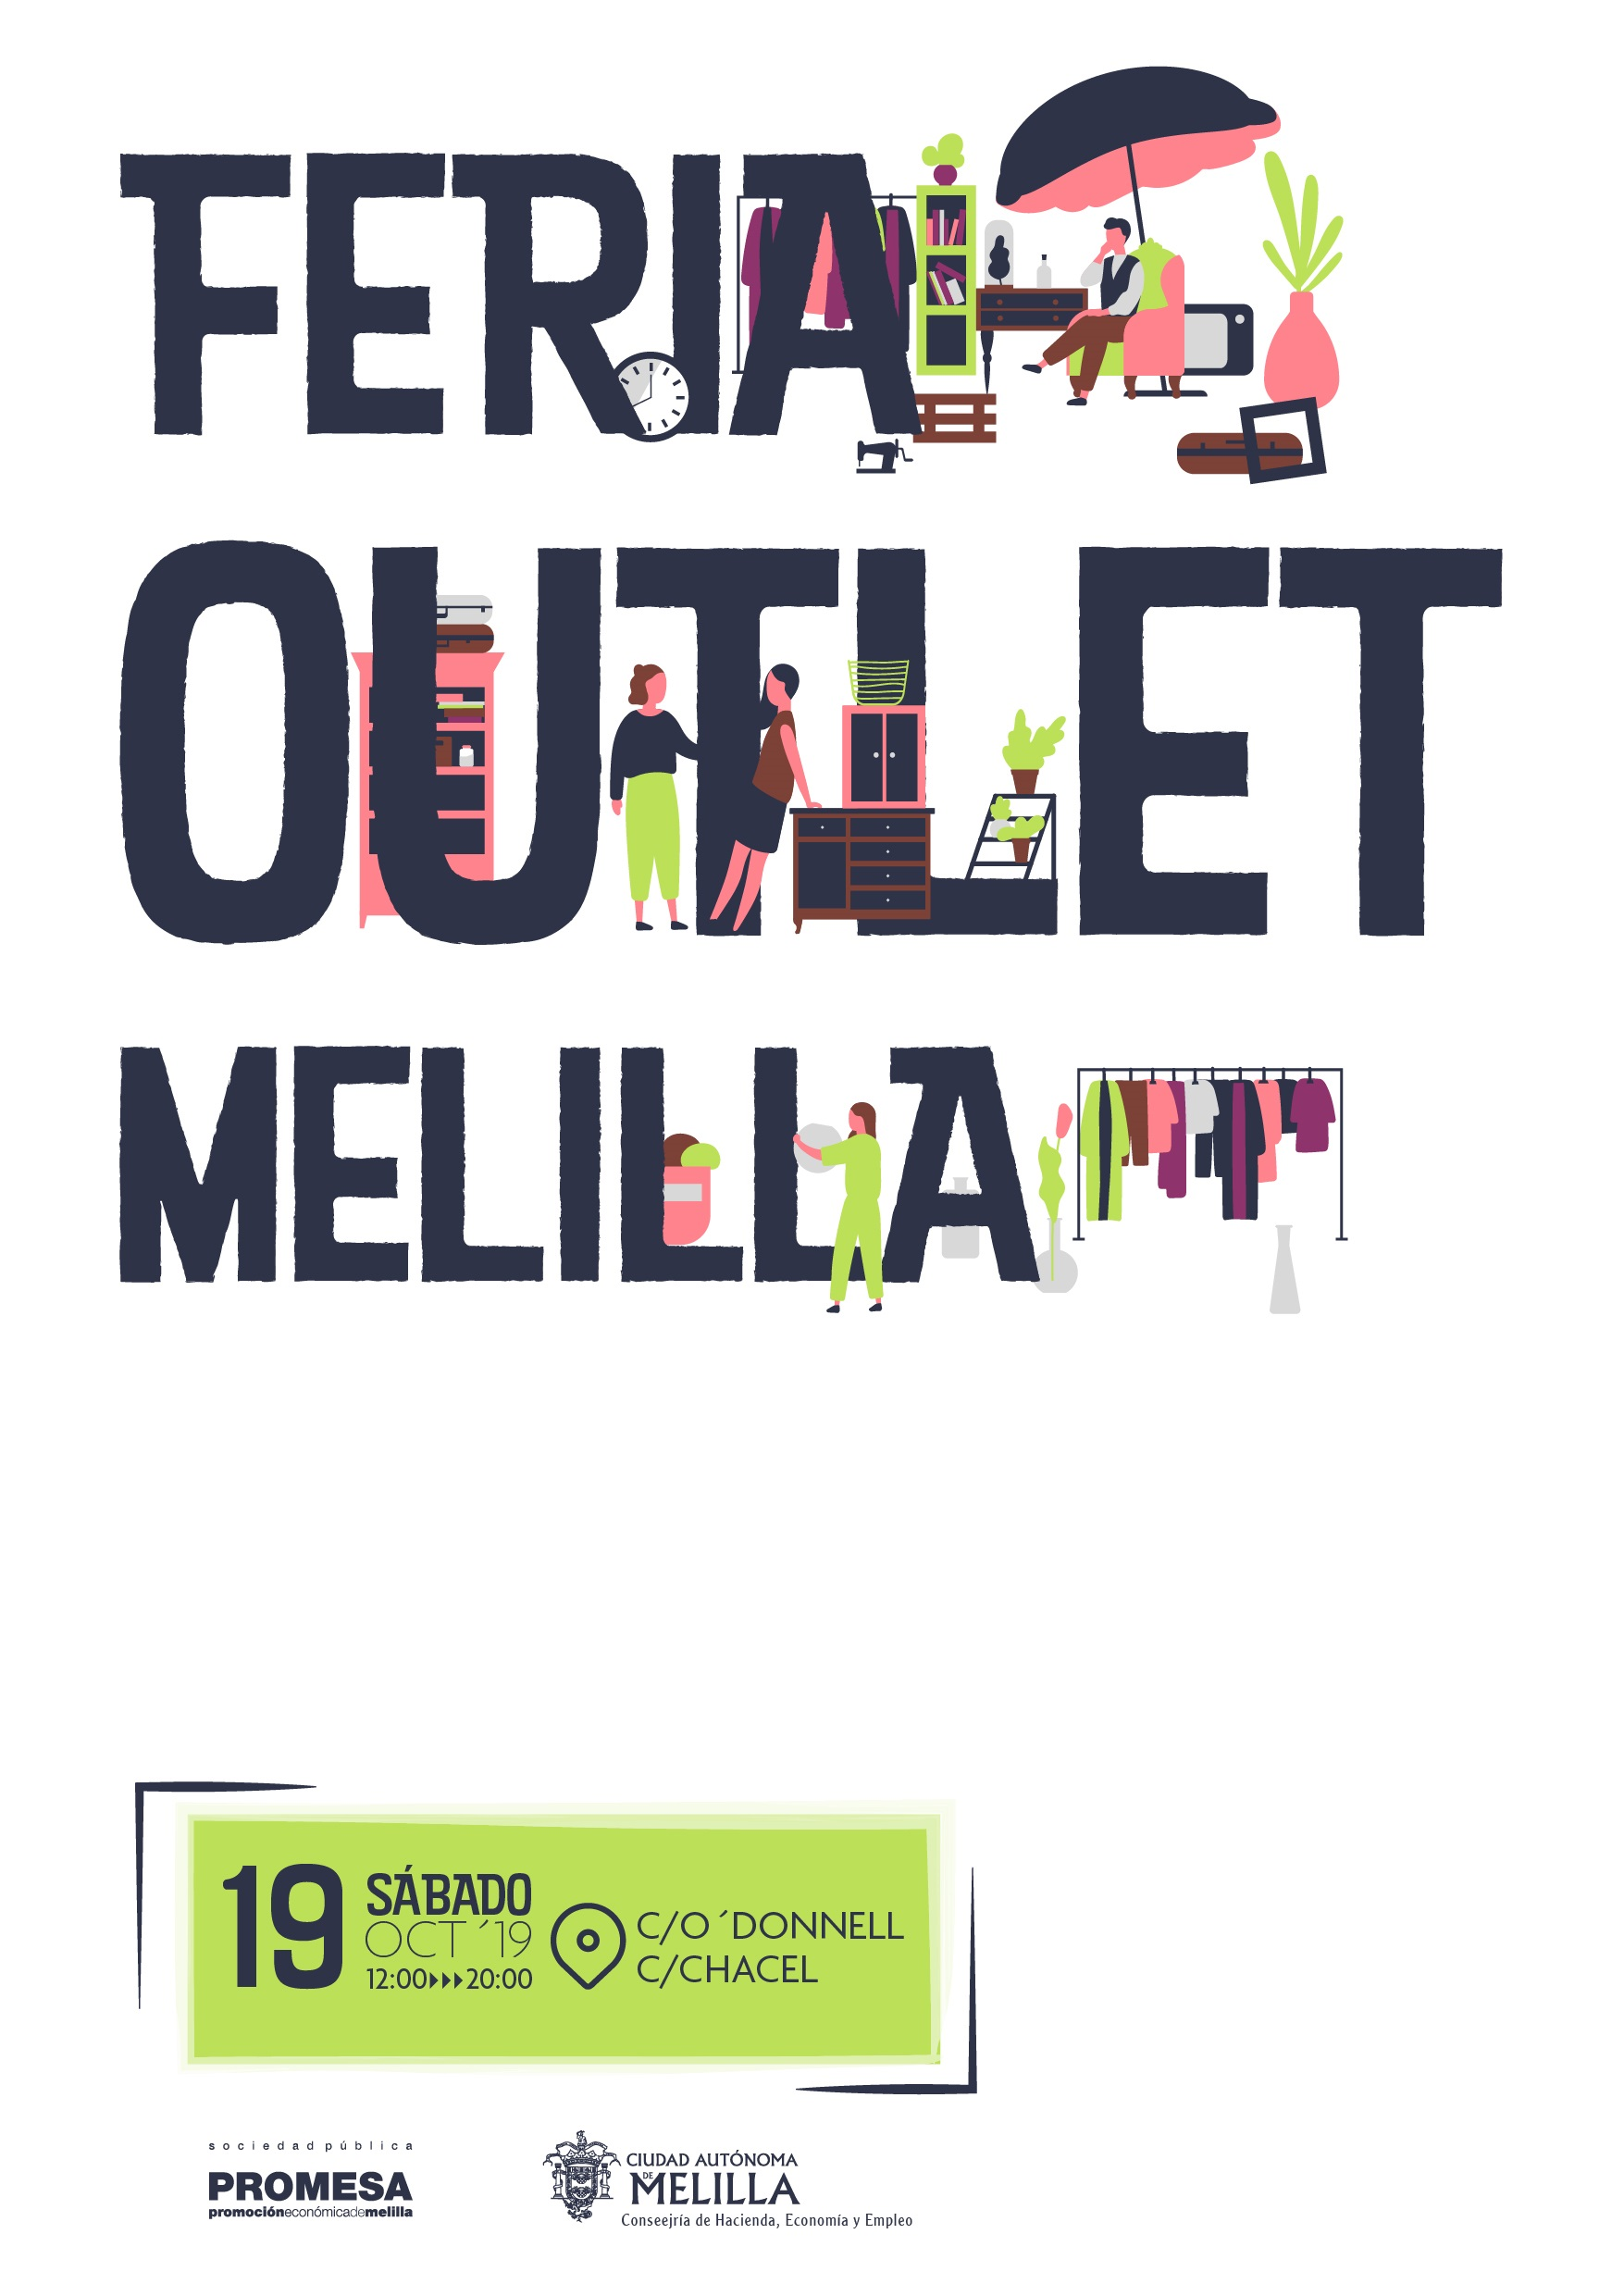 FERIA OUTLET, INICIATIVA DE APOYO AL COMERCIO LOCAL